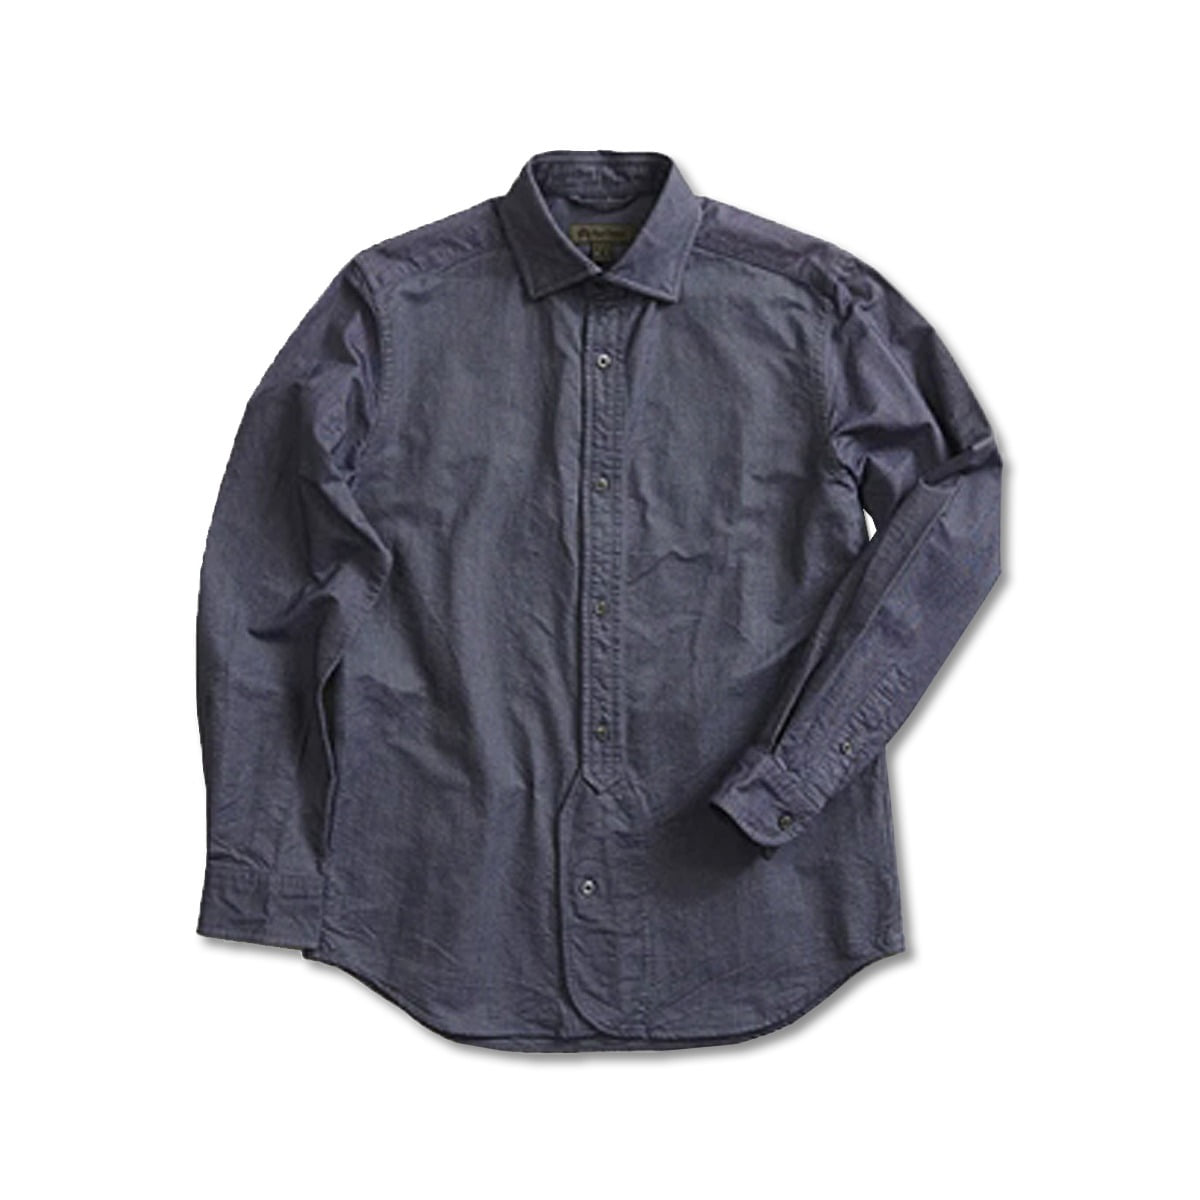 [NIGEL CABOURN] BRITISH OFFICERS SHIRT 'NAVY'